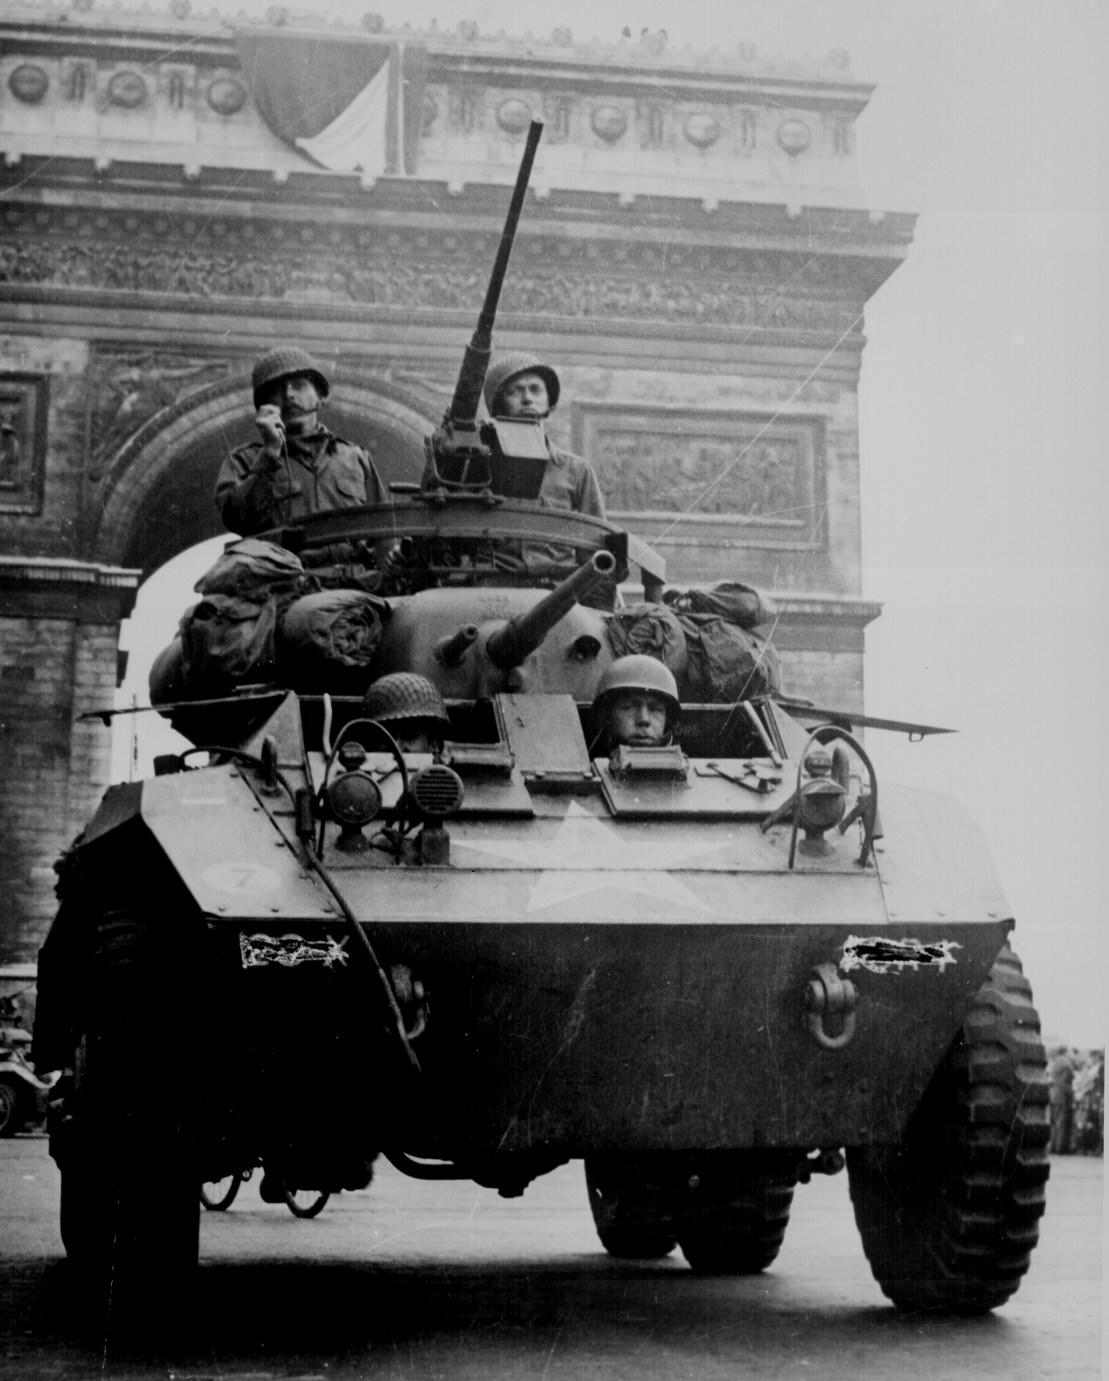 Liberation of Paris - August, 1944.